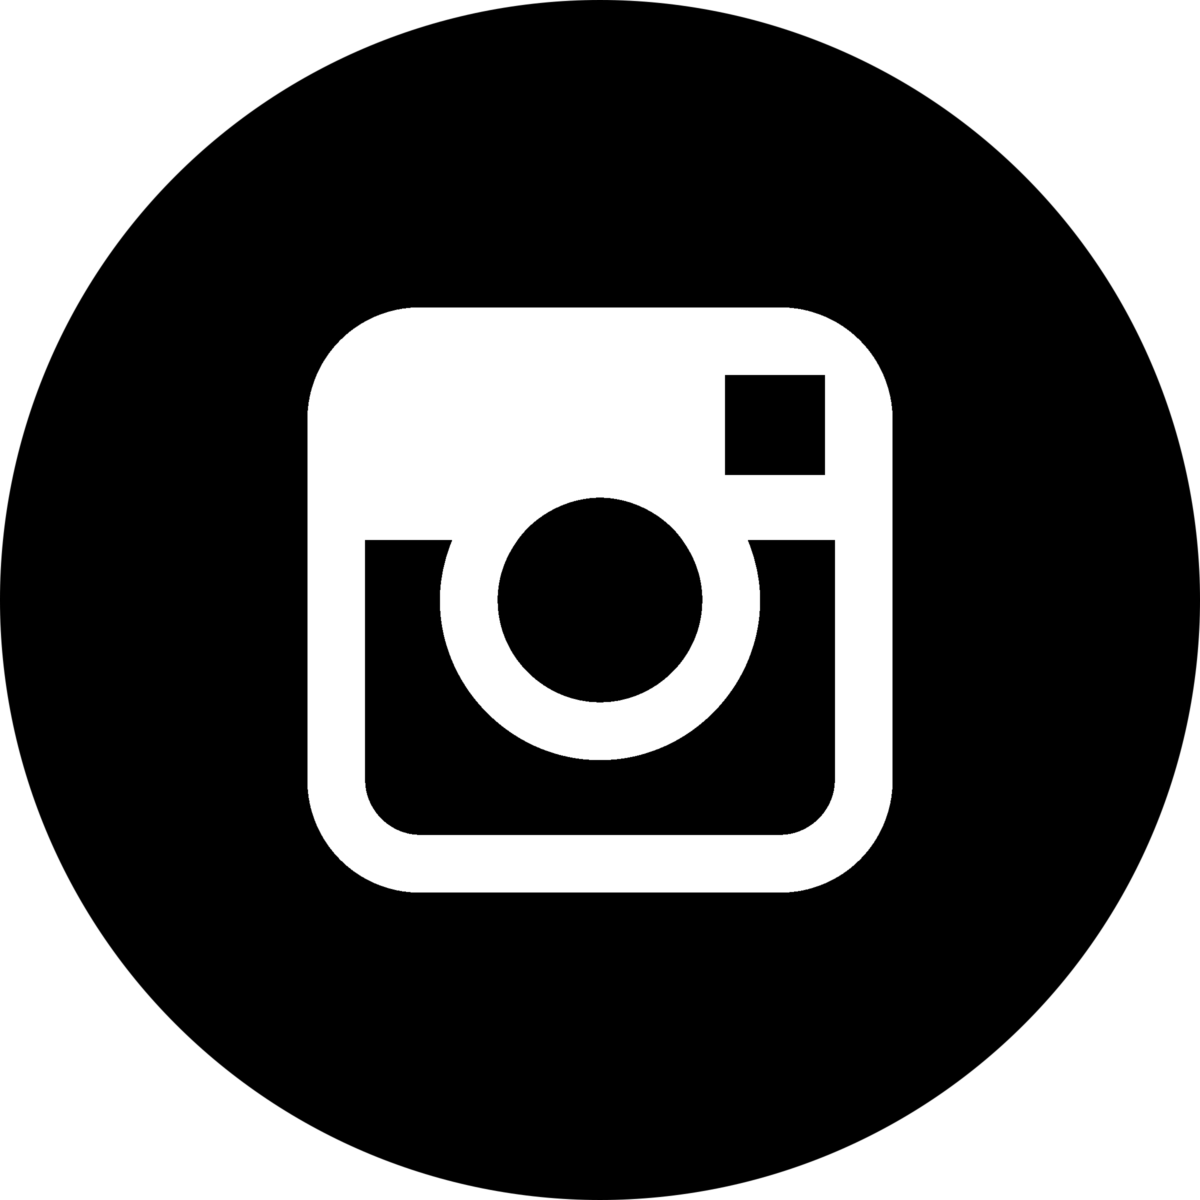 13 134881 social media icons black instagram daily dot logo